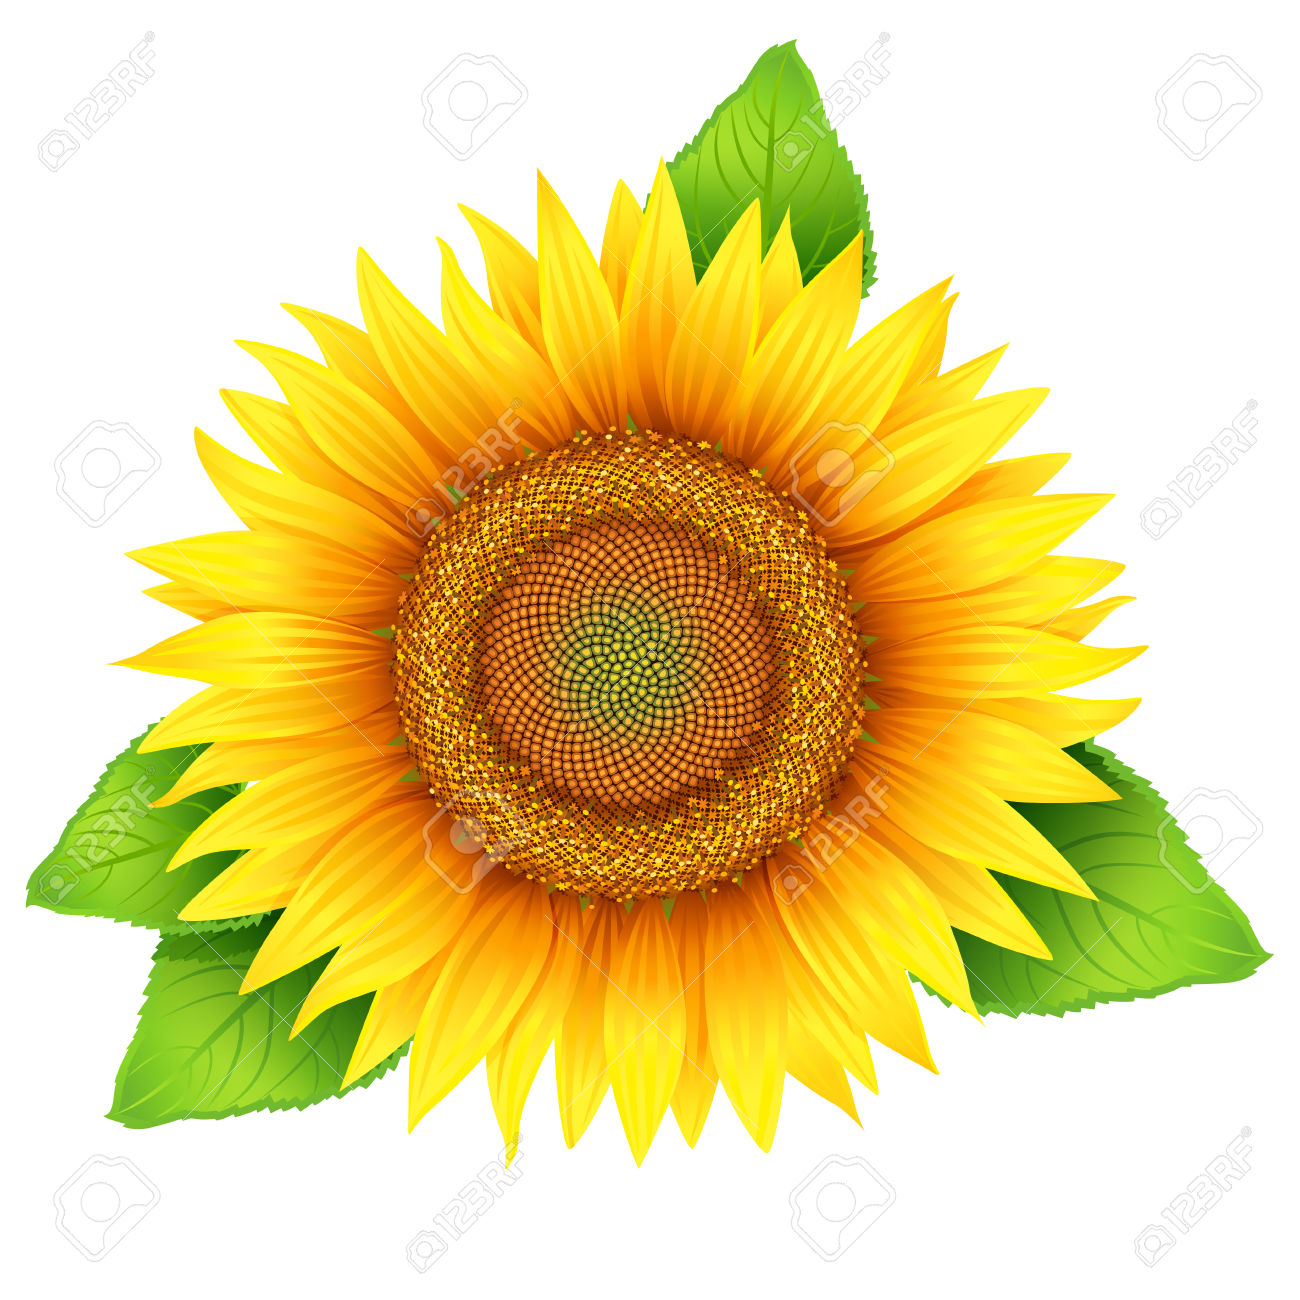 Sunflower leaf clipart.